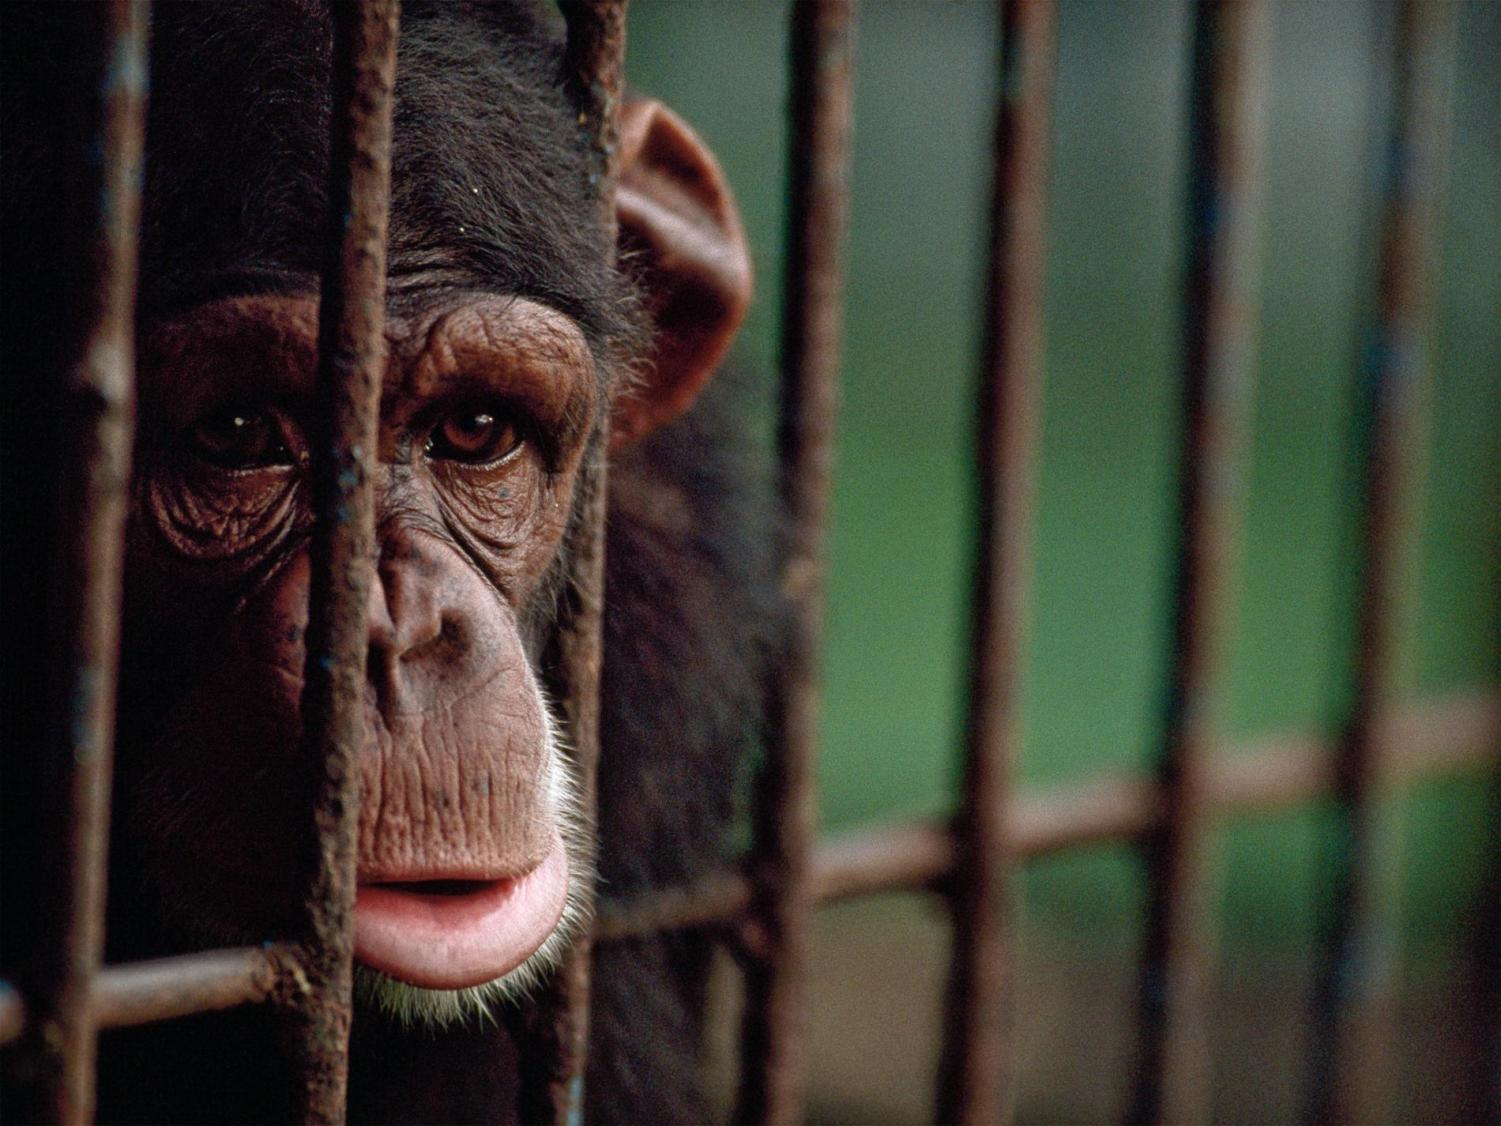 This chimpanzee is communicating its sadness through expressions, much like humans do.